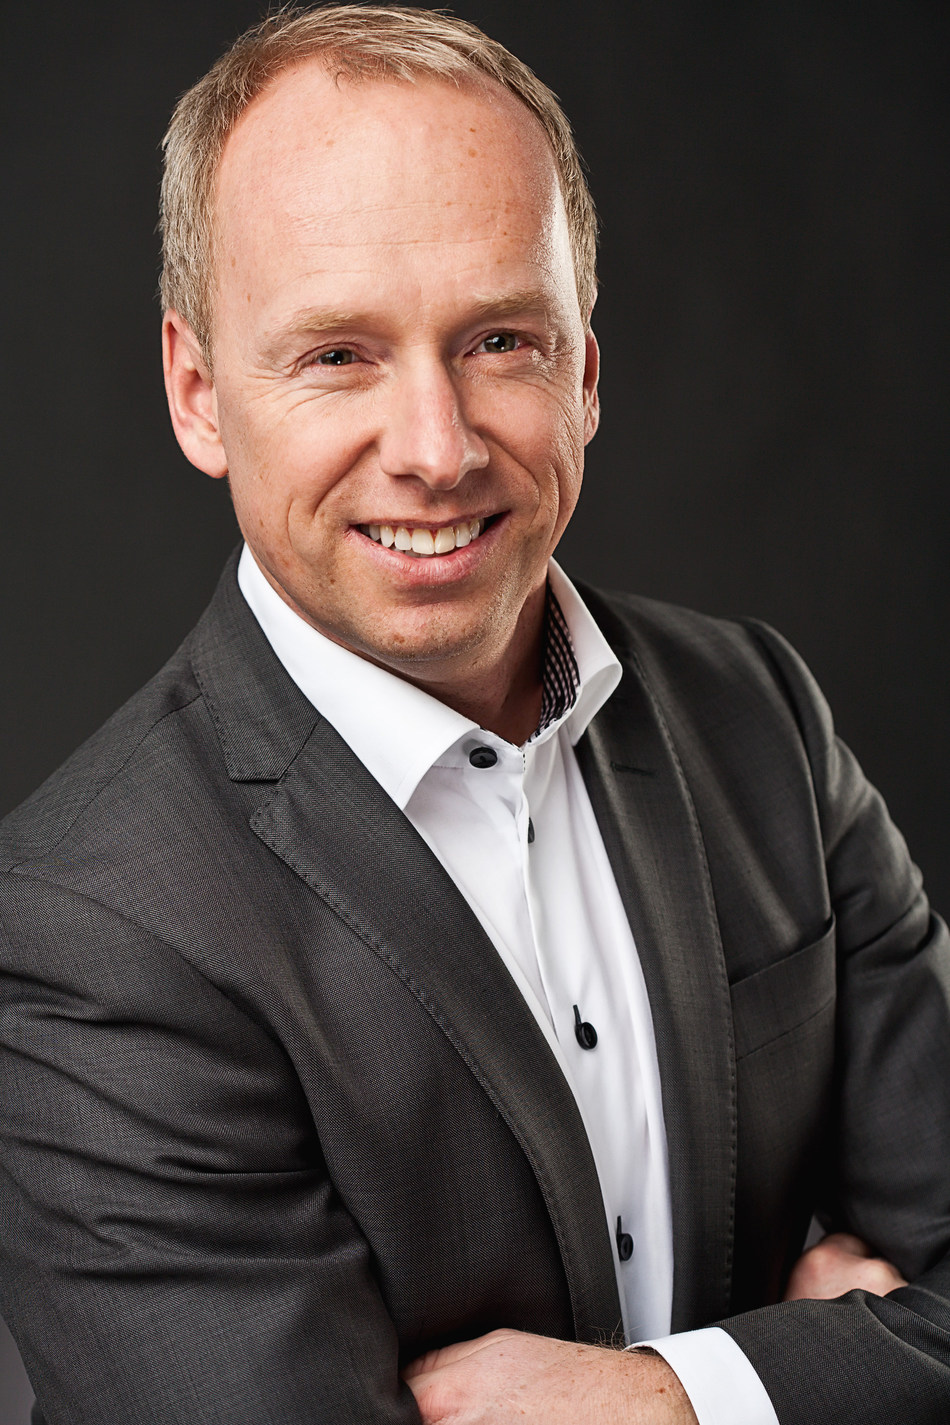 Ken Østreng to become new President and CEO